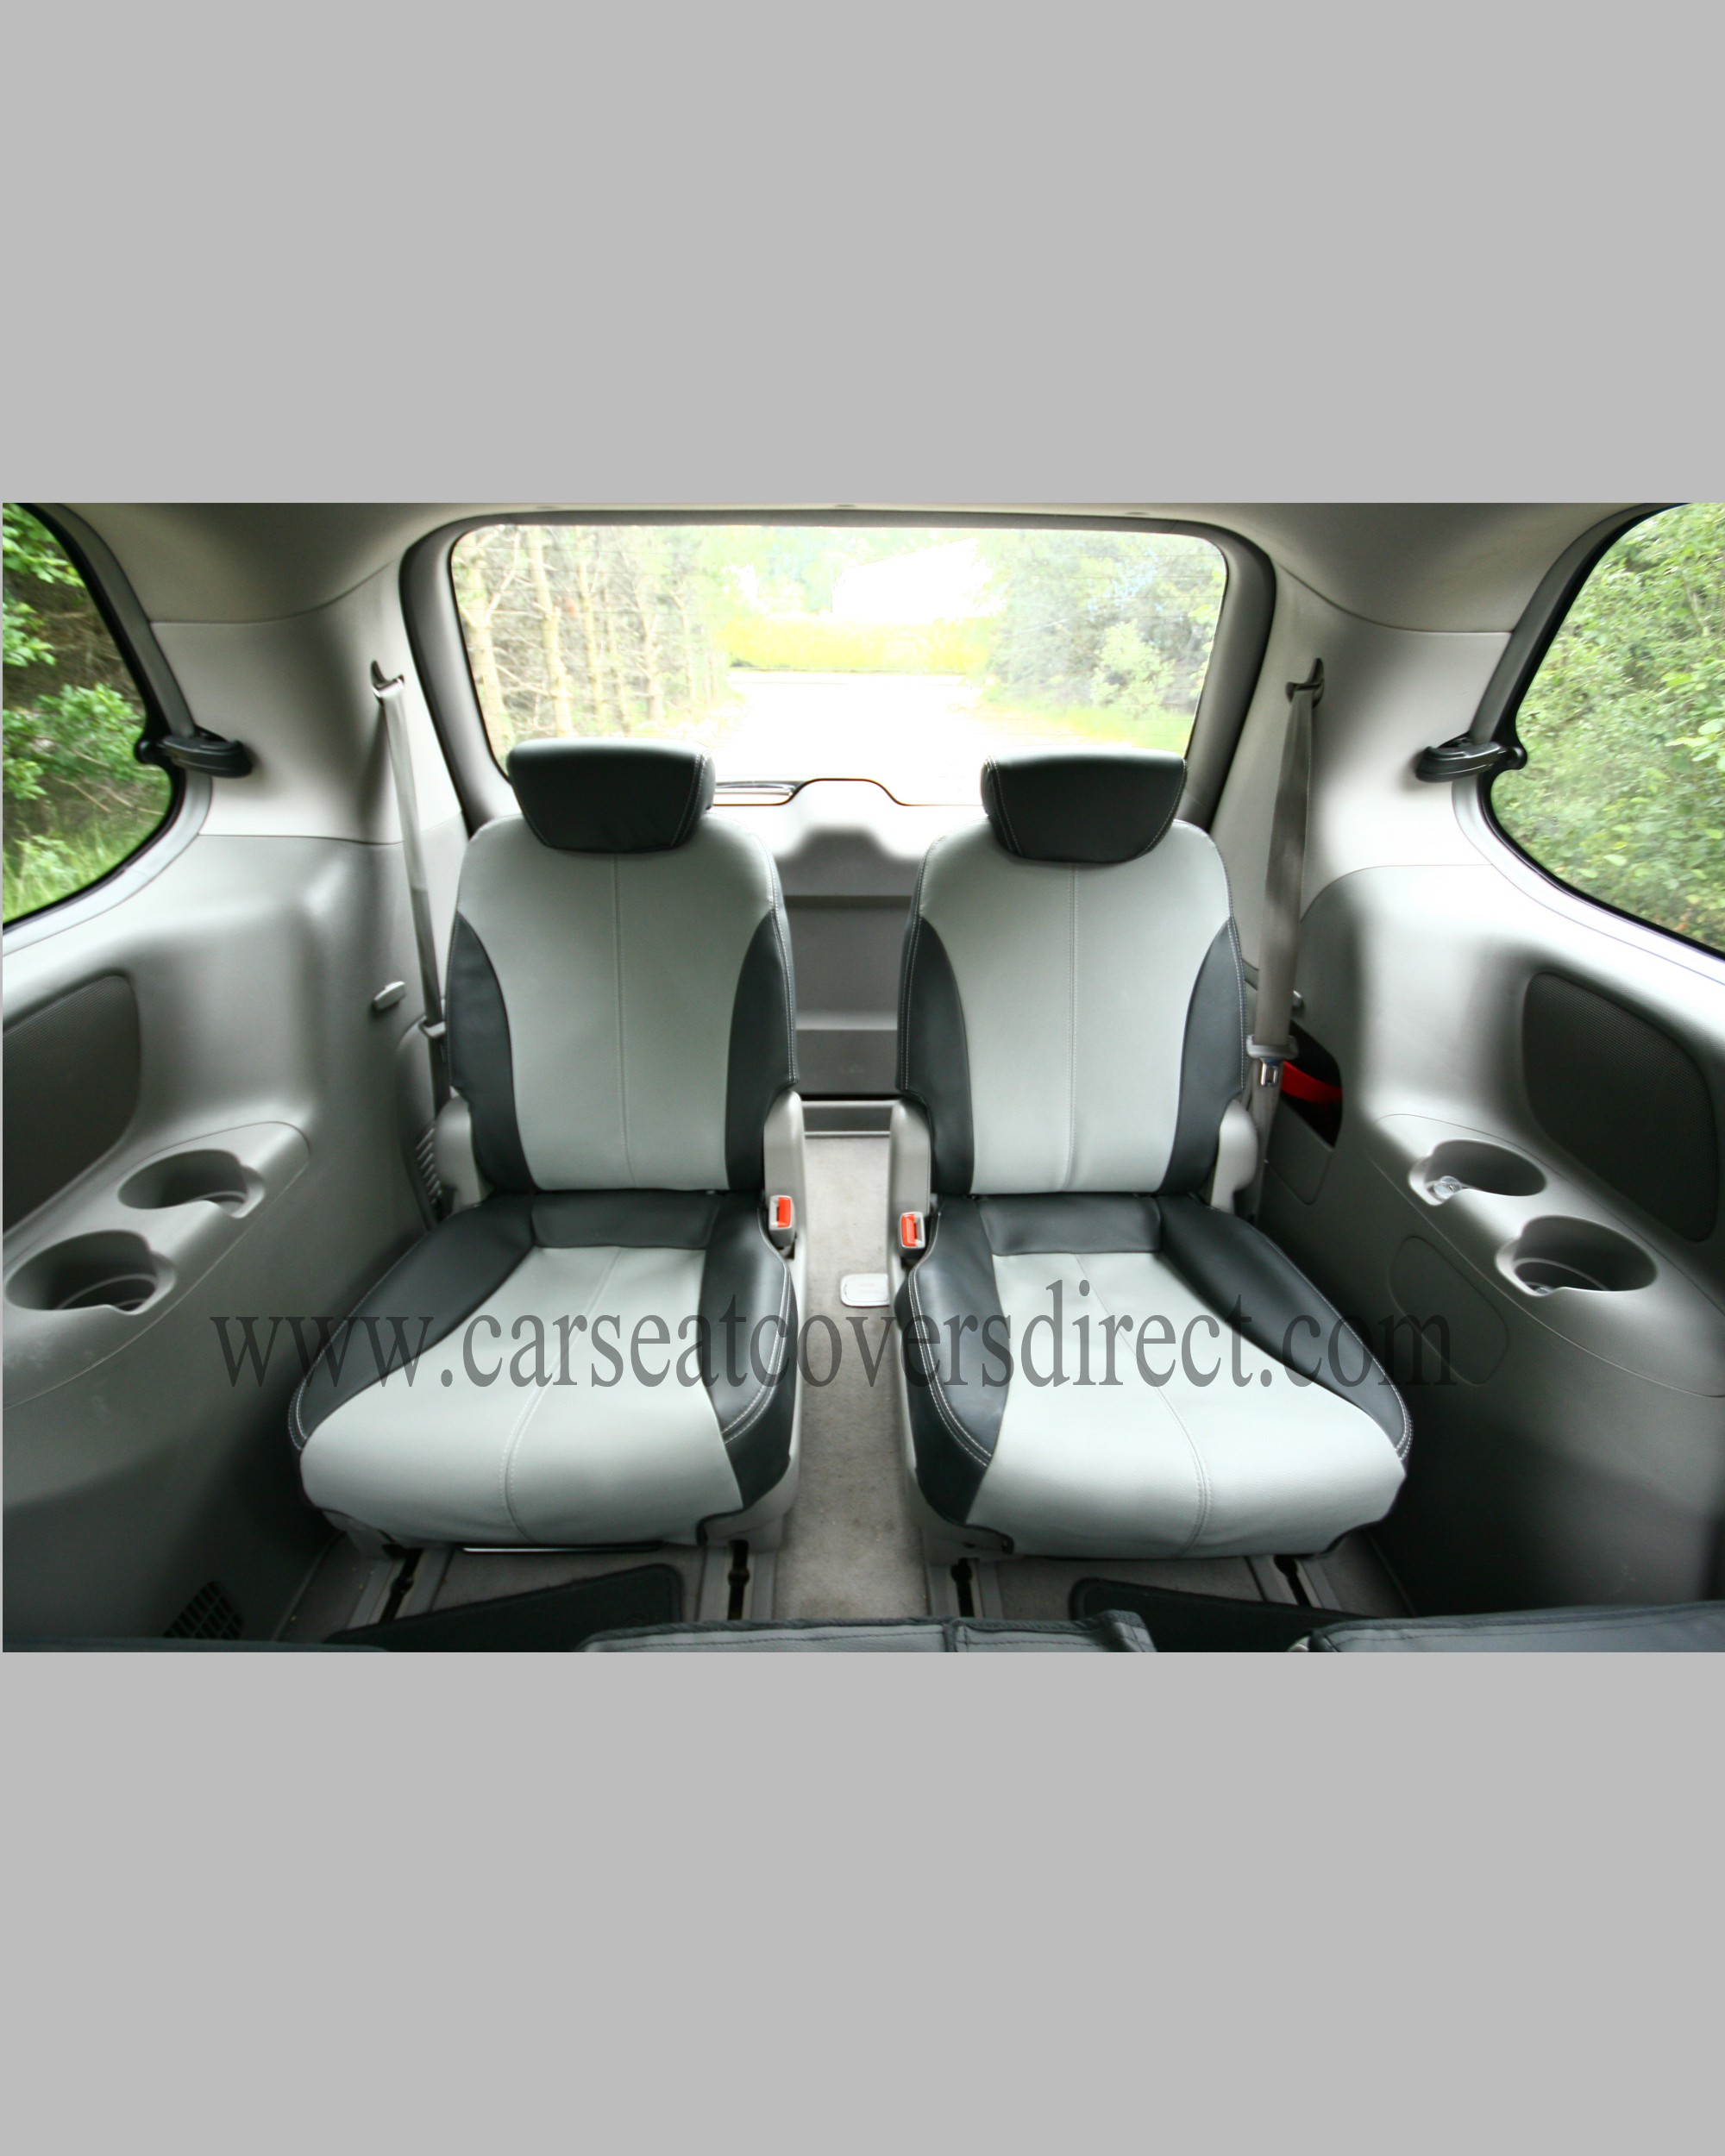 kia sedona seat covers car seat covers direct tailored to your choice. Black Bedroom Furniture Sets. Home Design Ideas